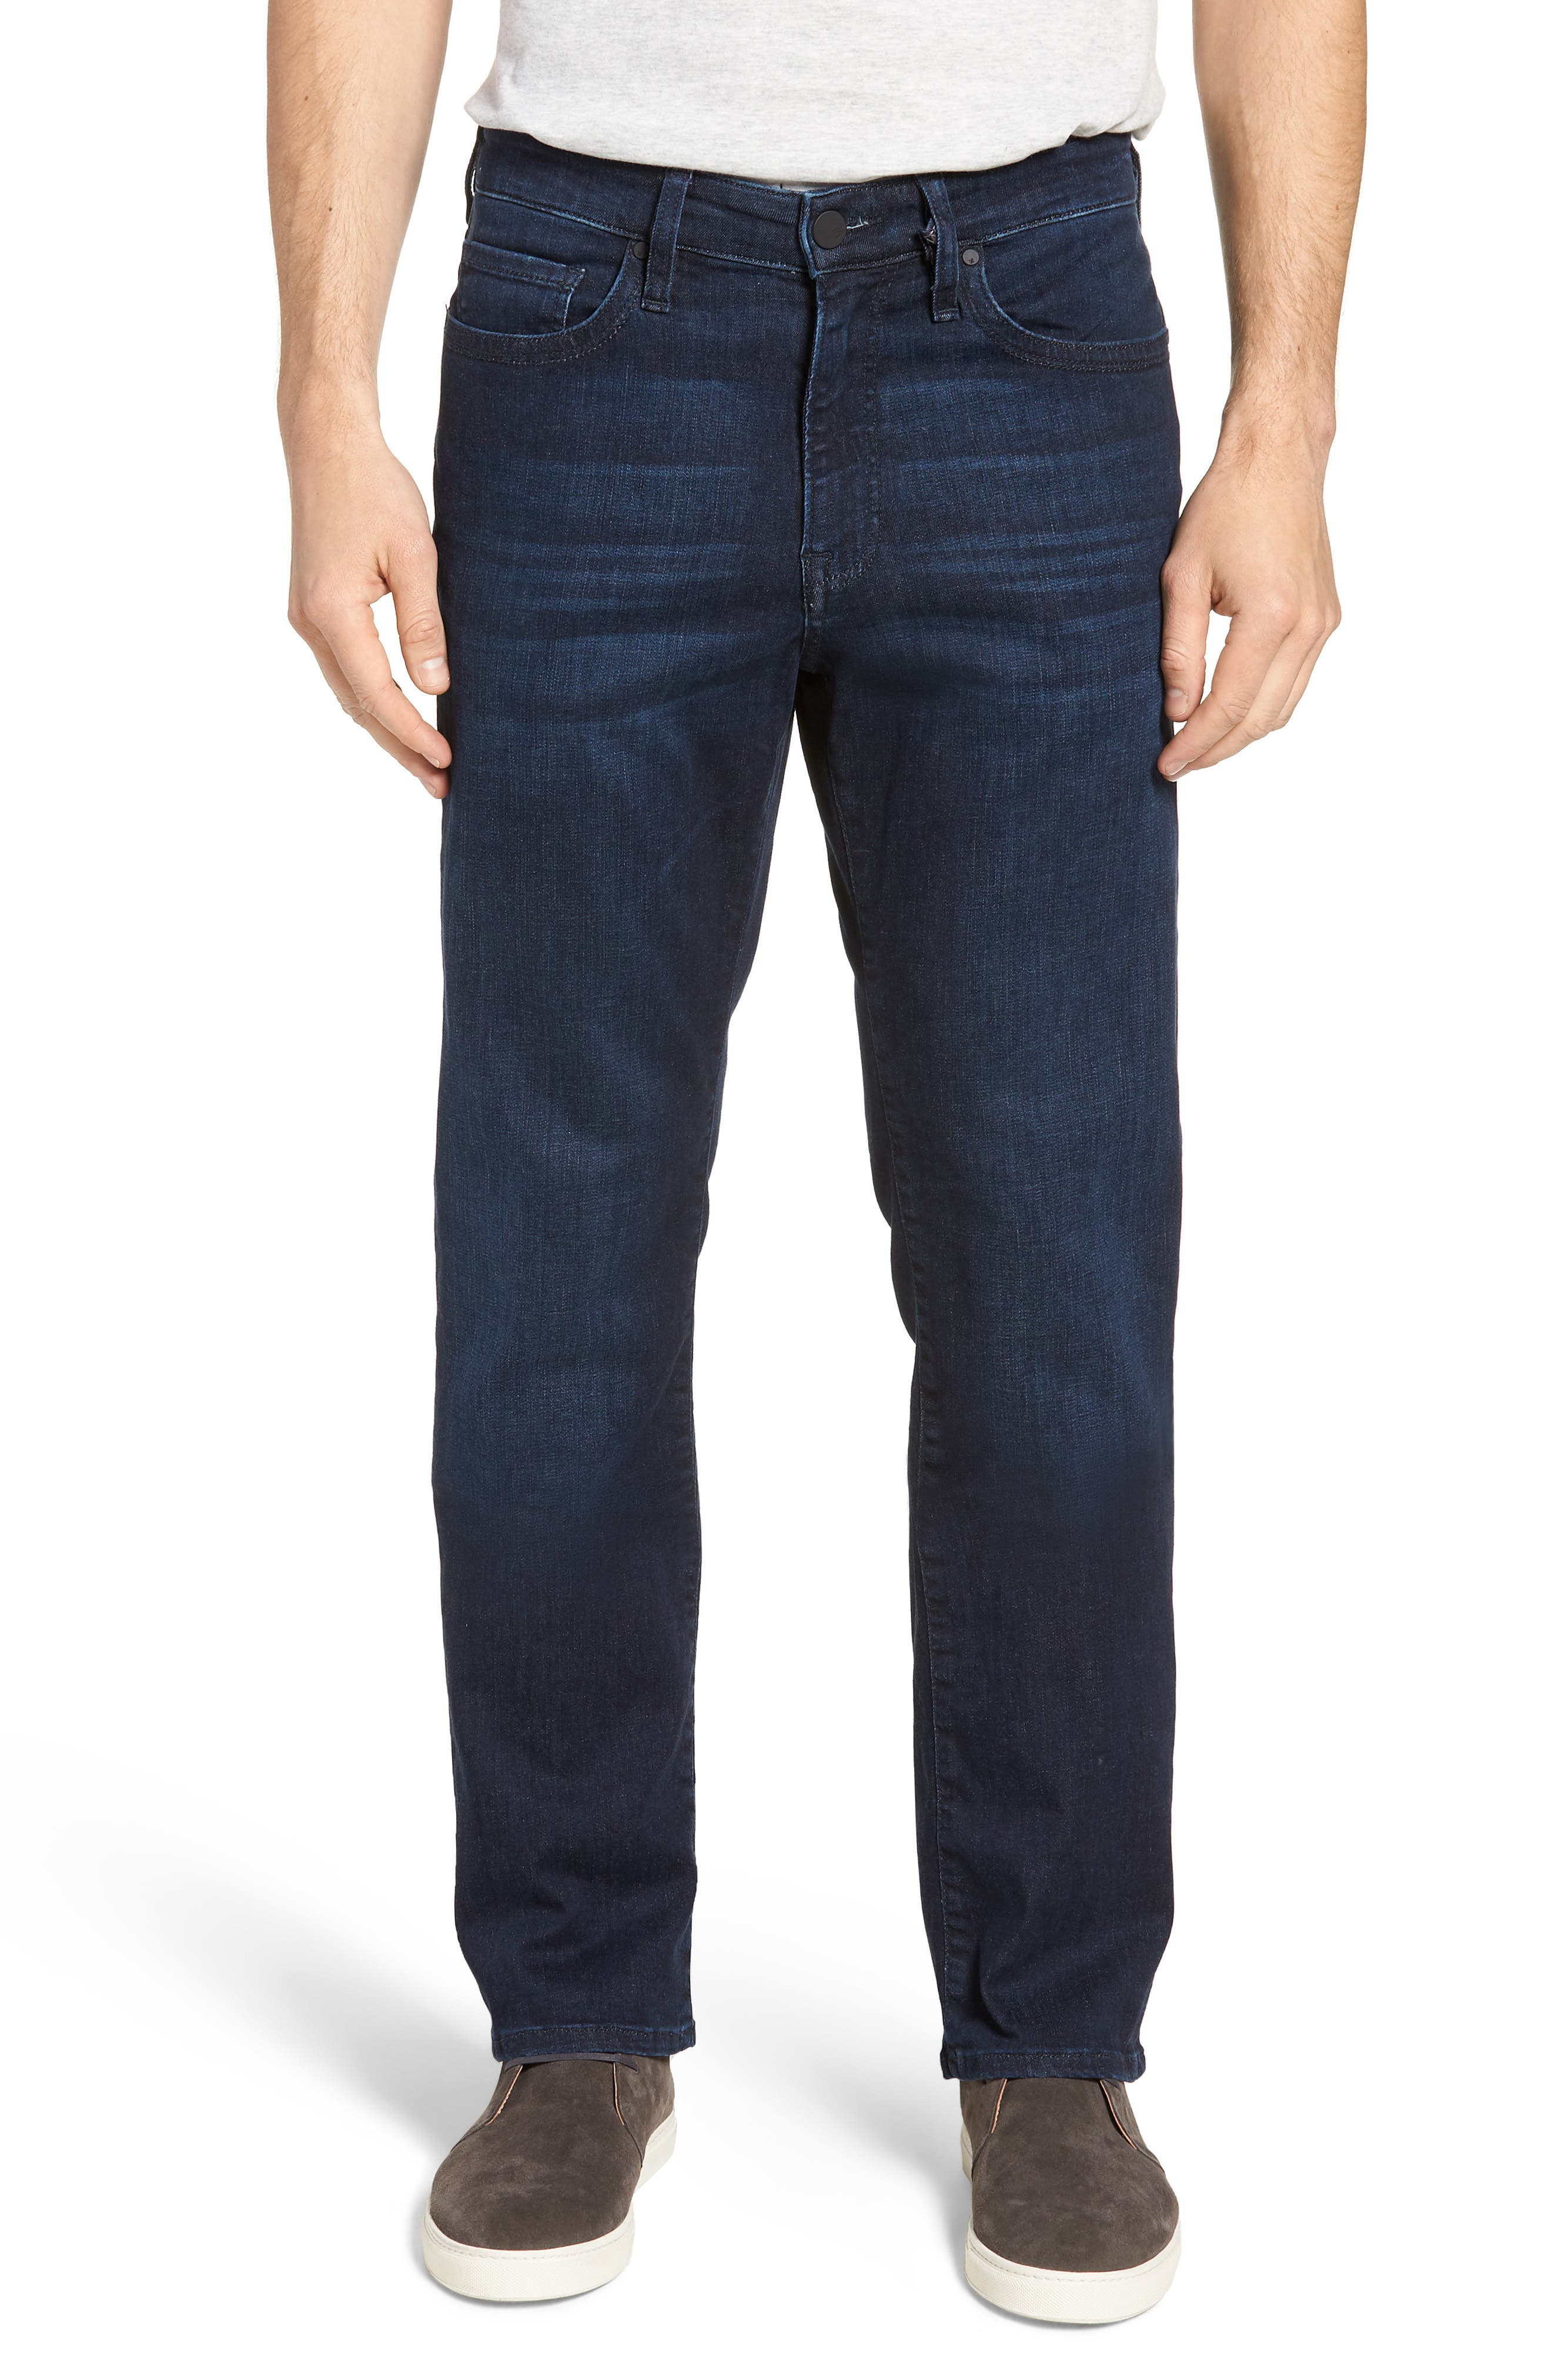 Charisma Relaxed Fit Jeans,                         Main,                         color, Dark Milan